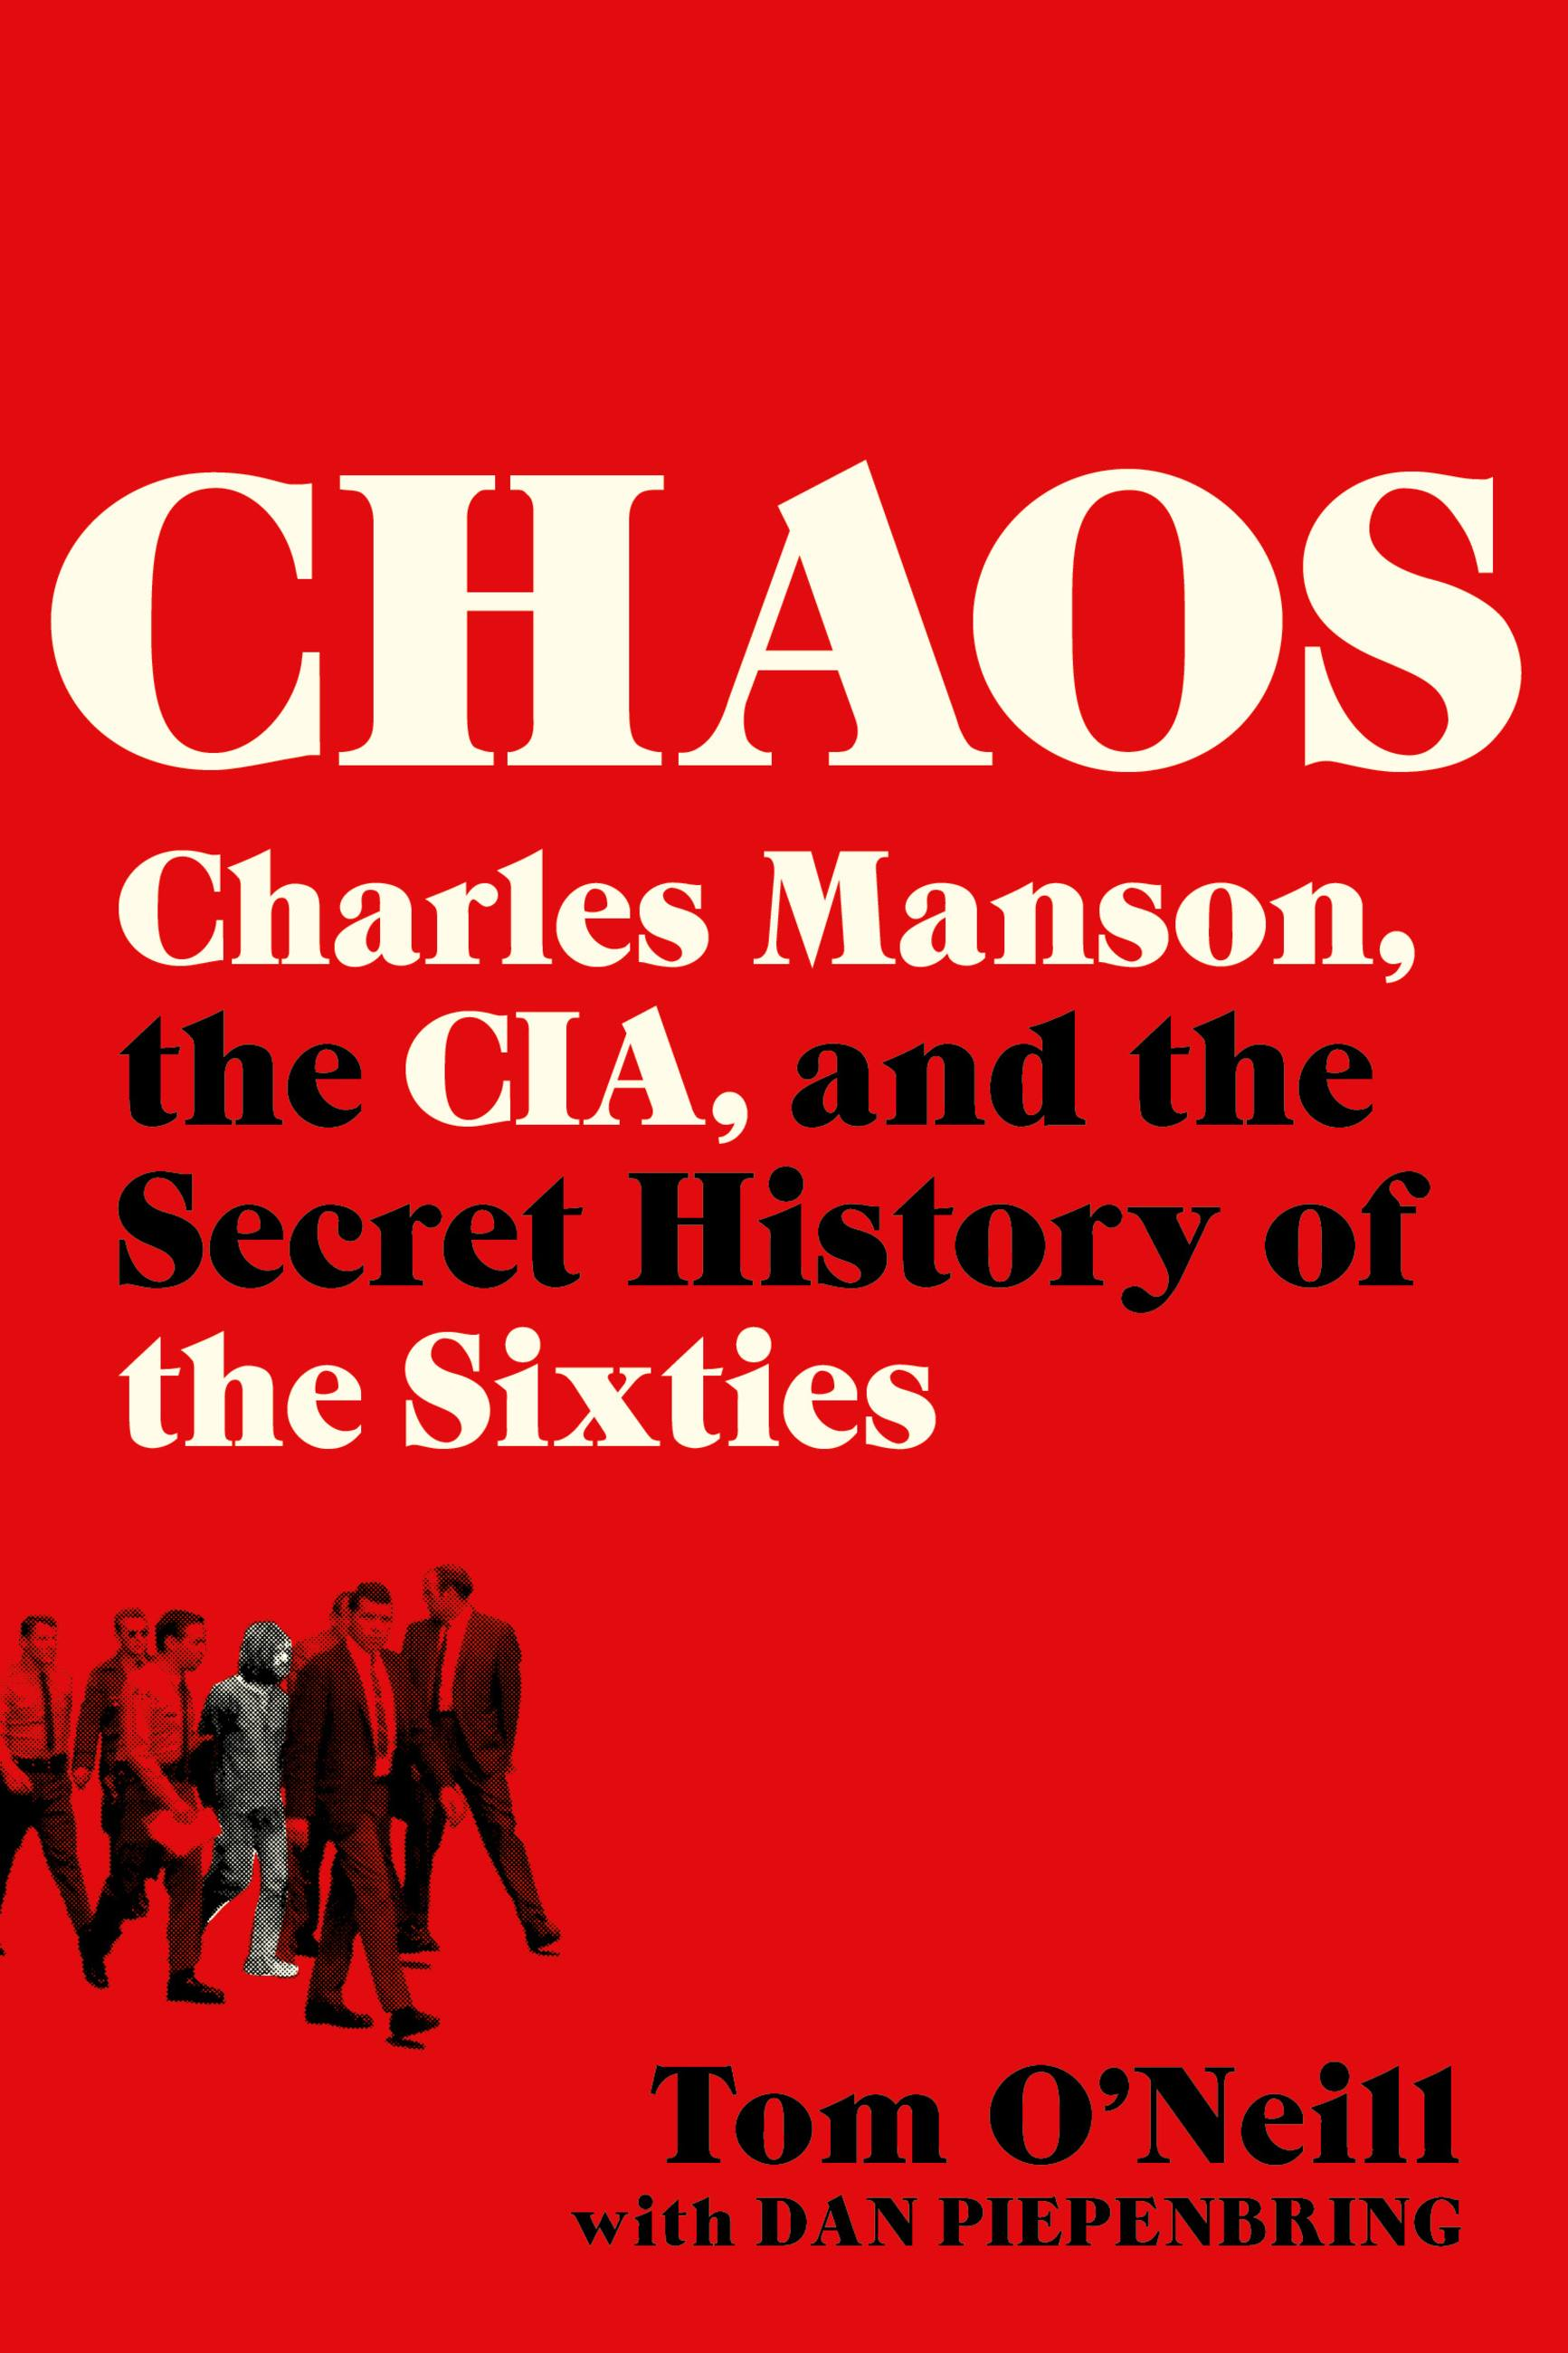 Chaos Charles Manson, the CIA, and the Secret History of the Sixties